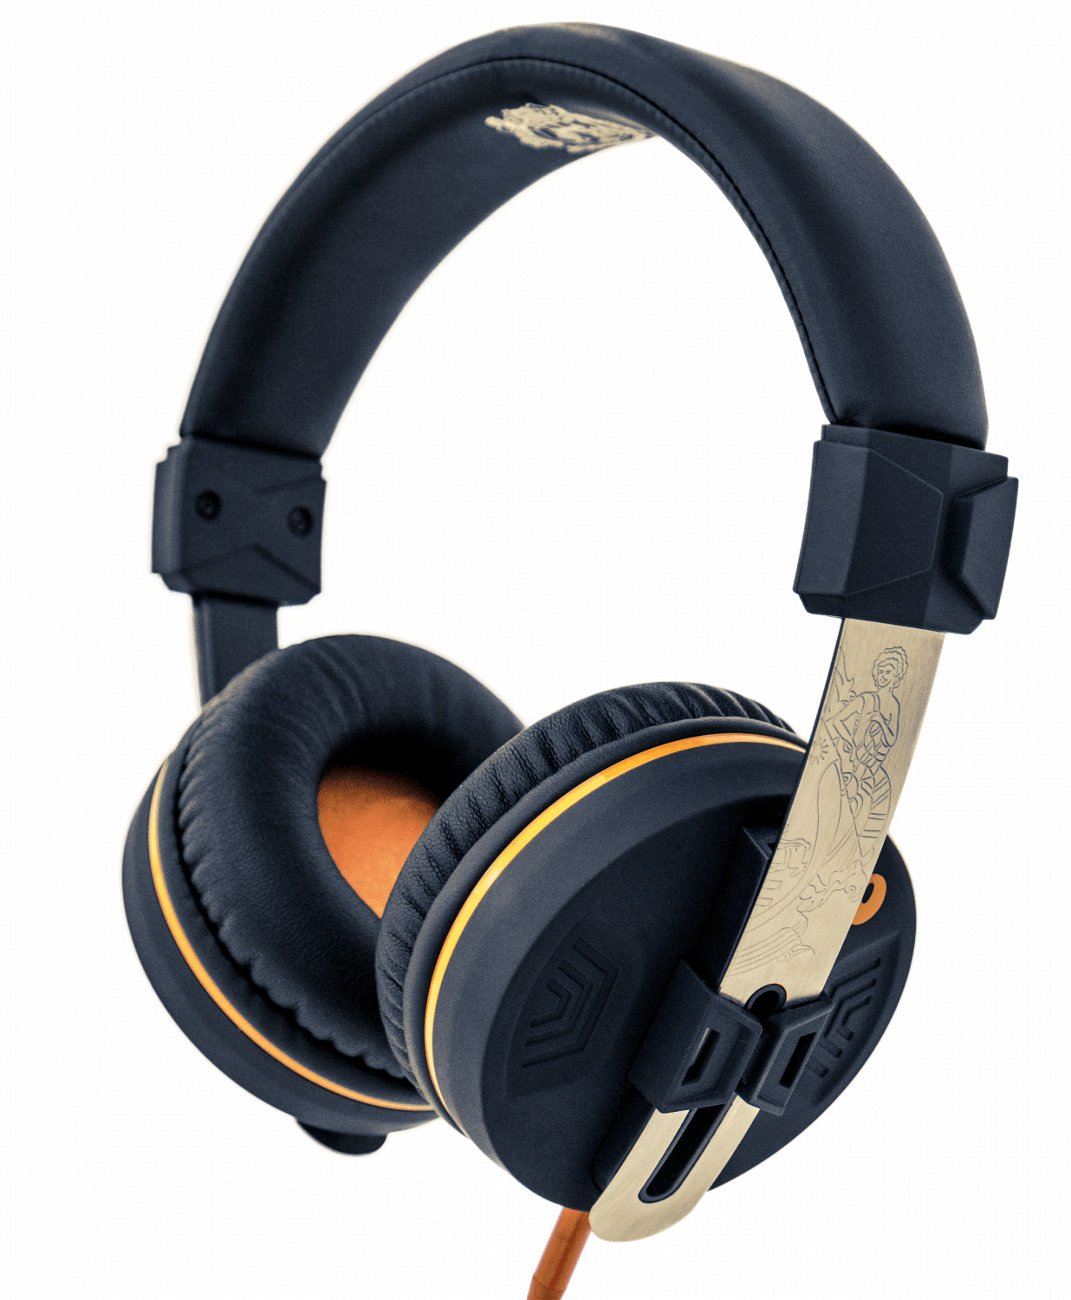 Headphones with 40mm Drivers, Compatible with Smart Phones